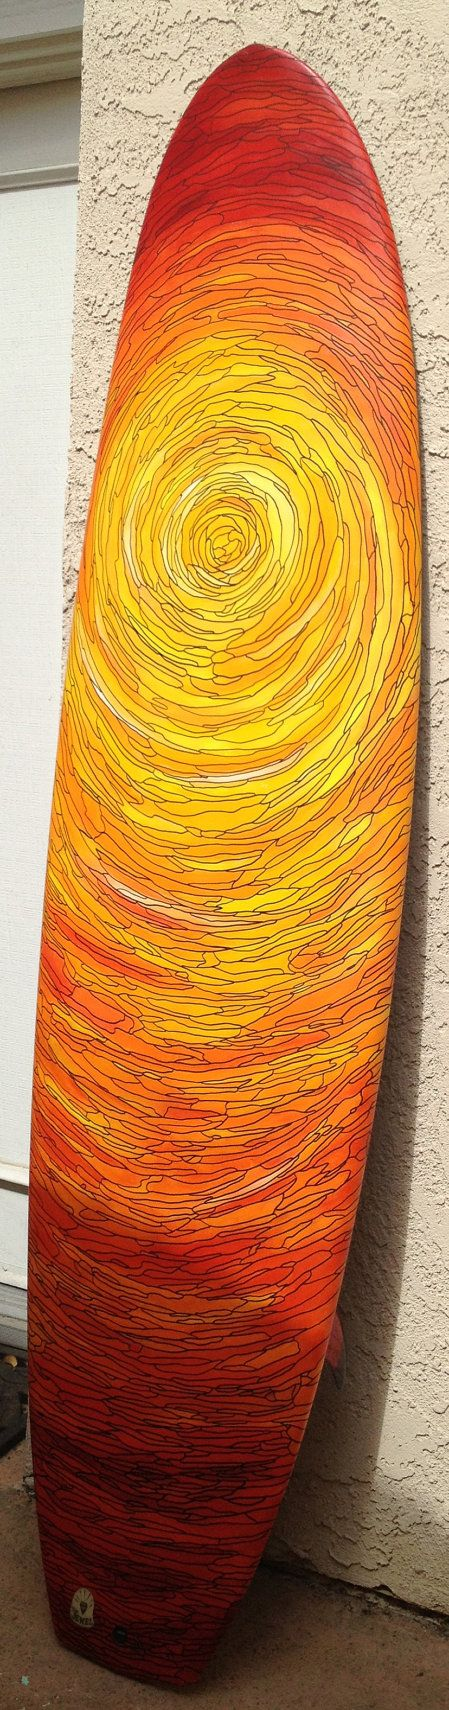 """#LL @lufelive #Surfing Surfer's Sunset - Hand Painted 6'8"""" DanO Surfboard"""